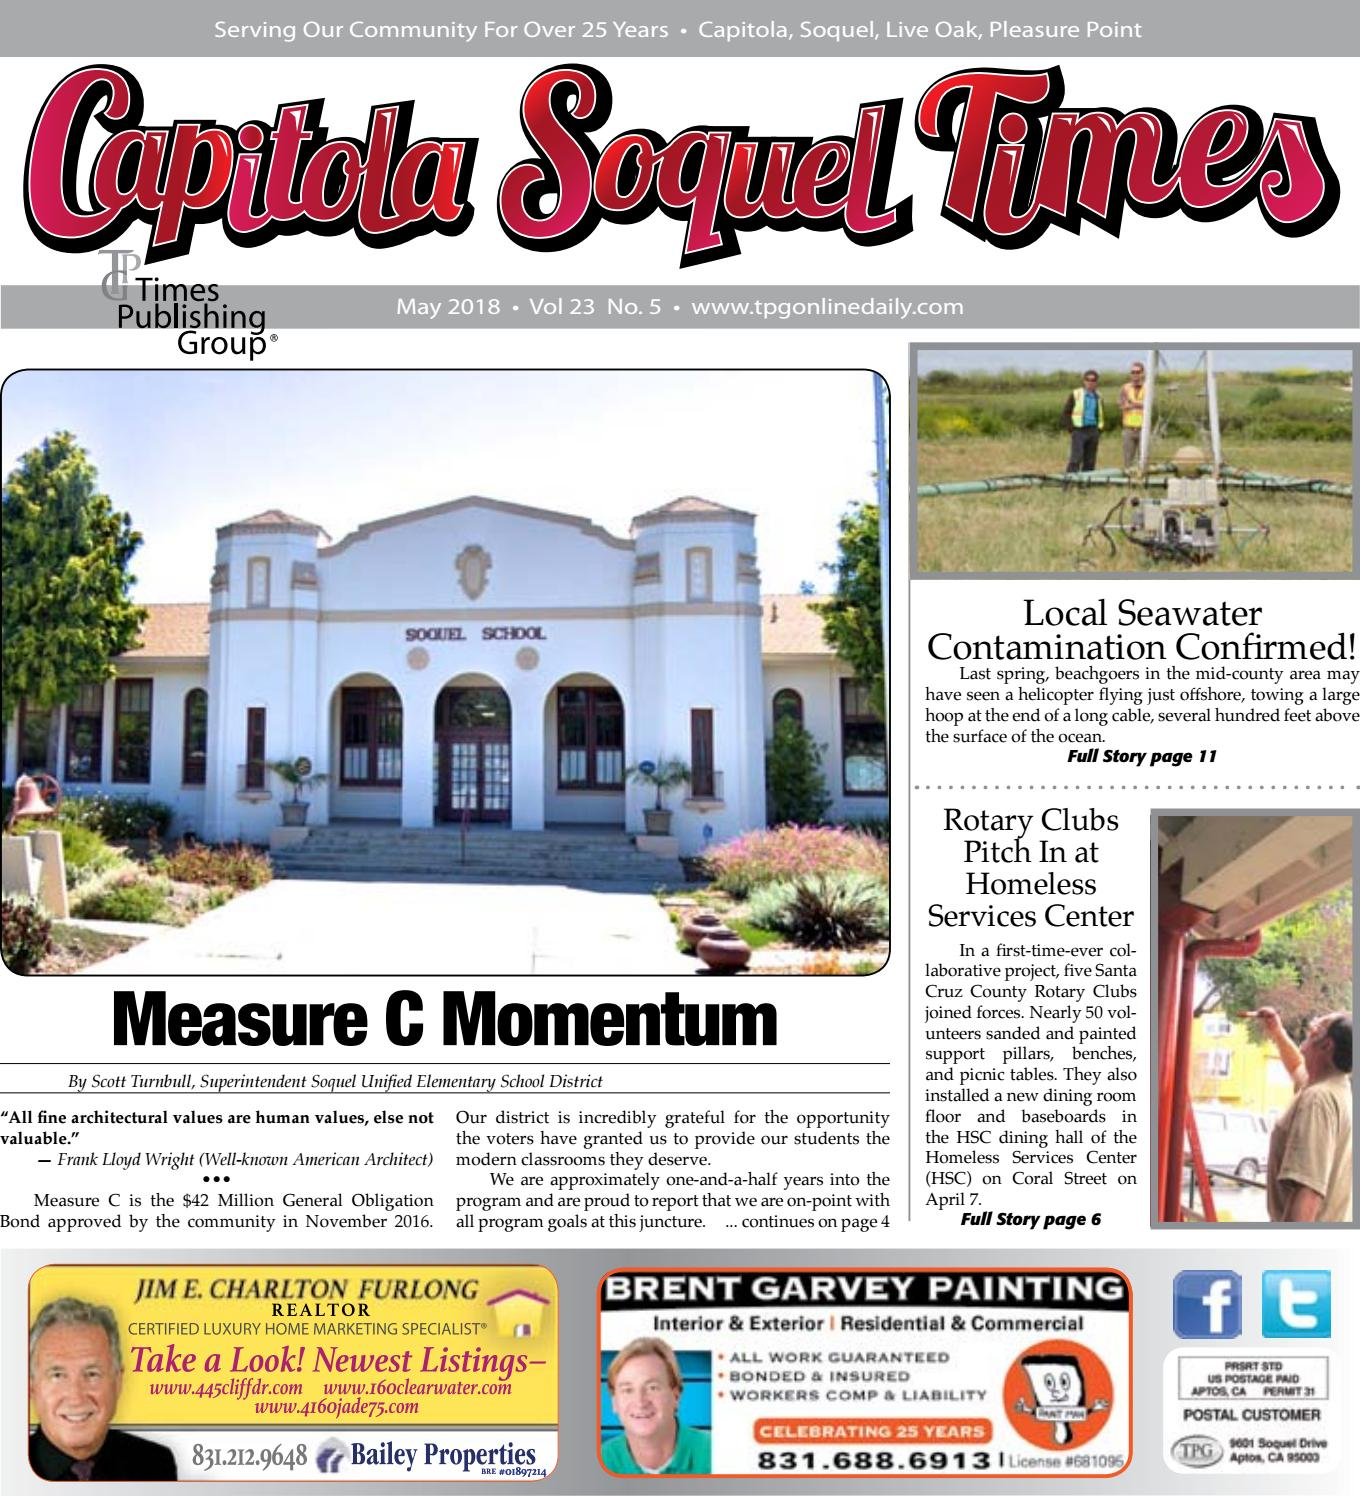 Casa & Co Milazzo capitola soquel times: may 2018 by times publishing group